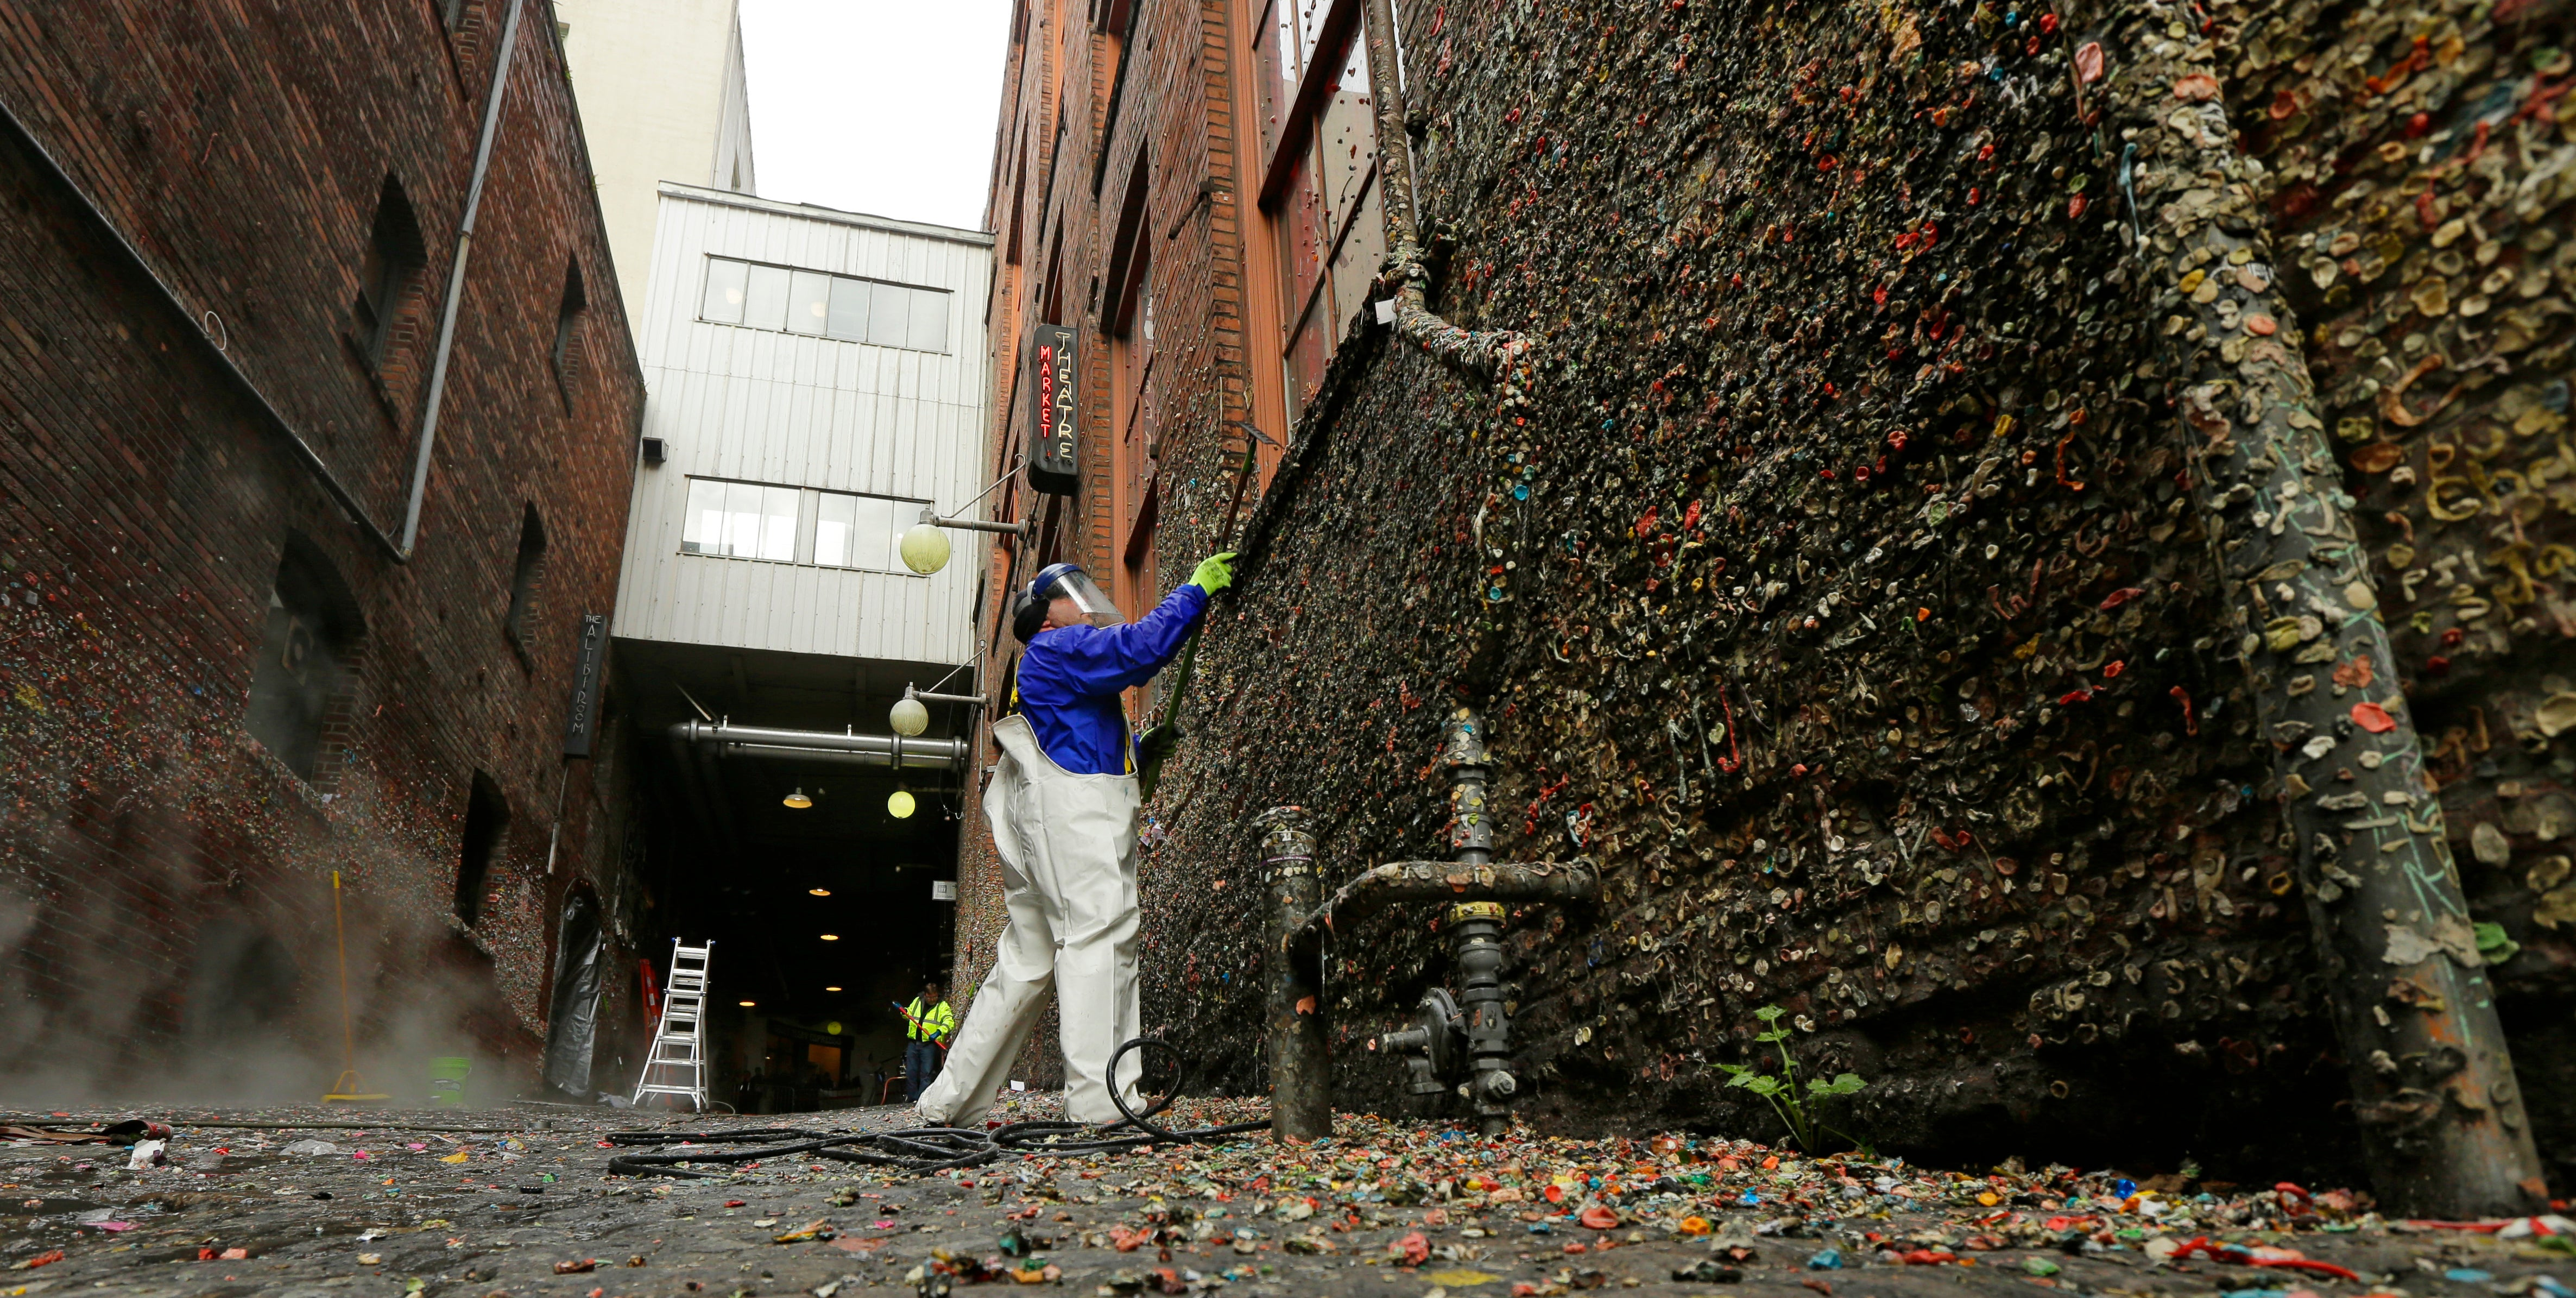 Seattle's Famous Gum Wall Is Being Scrubbed Away to Bare Brick